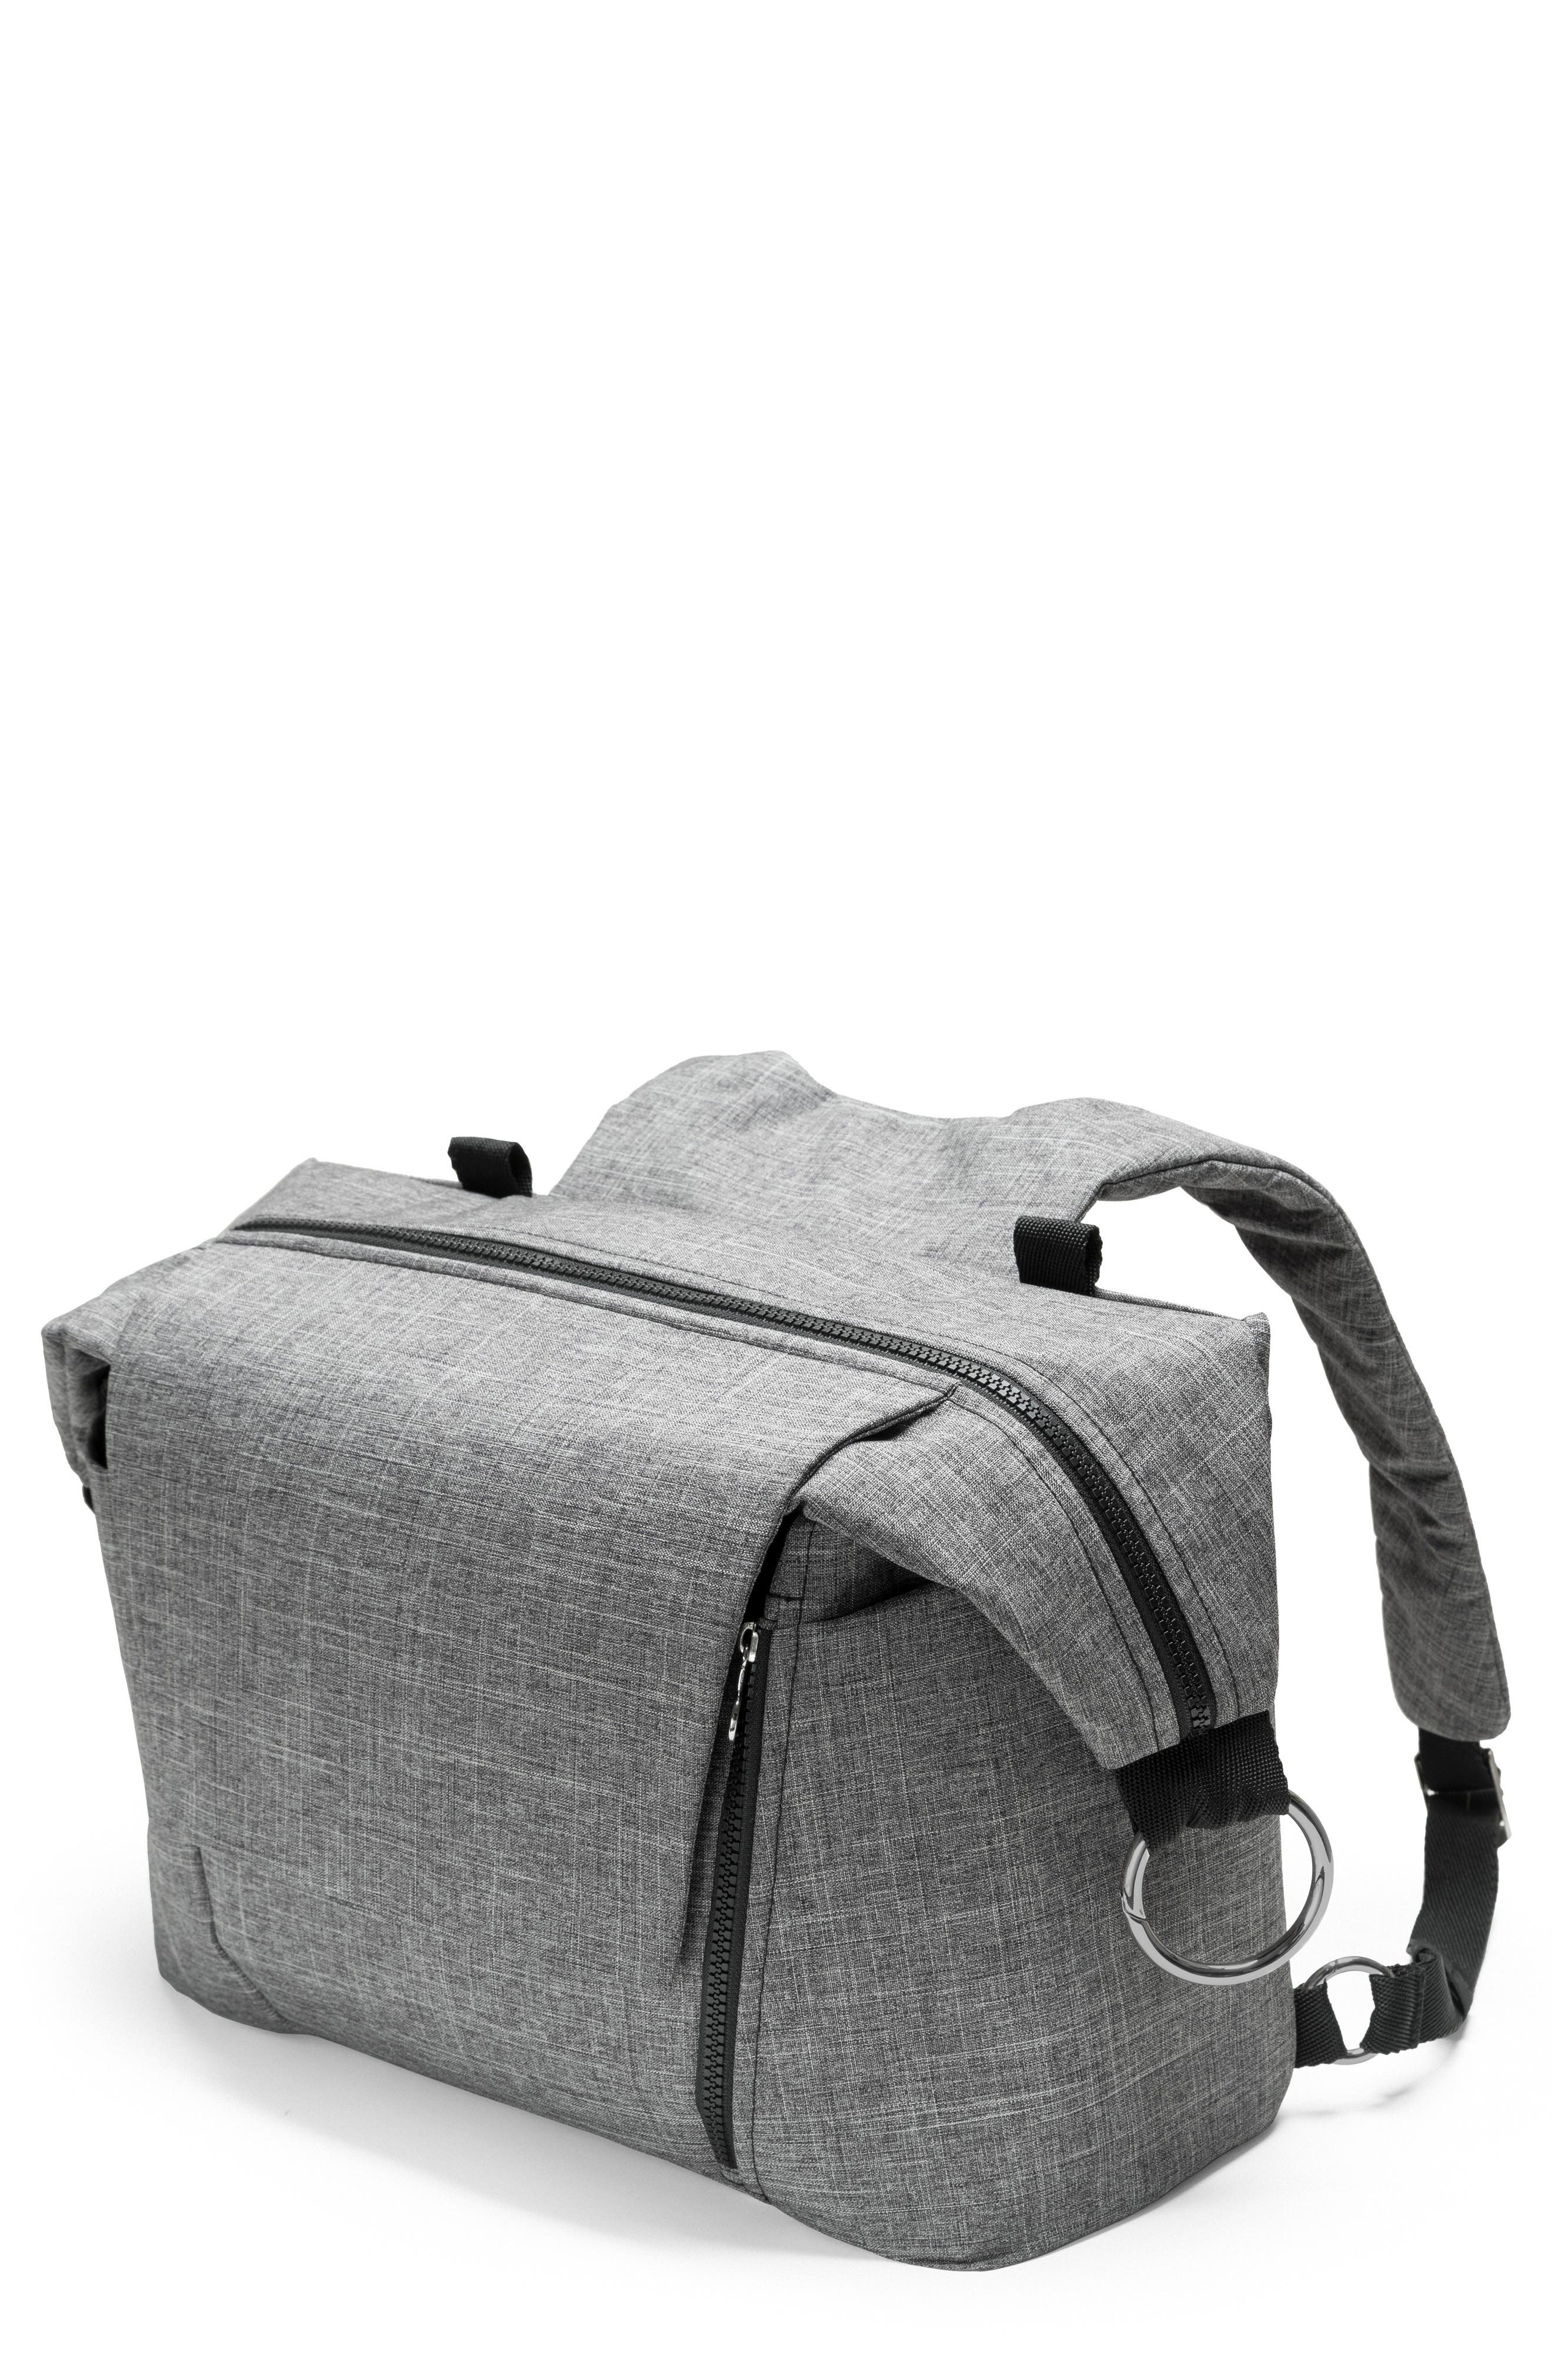 Main Image - Stokke Changing Diaper Bag